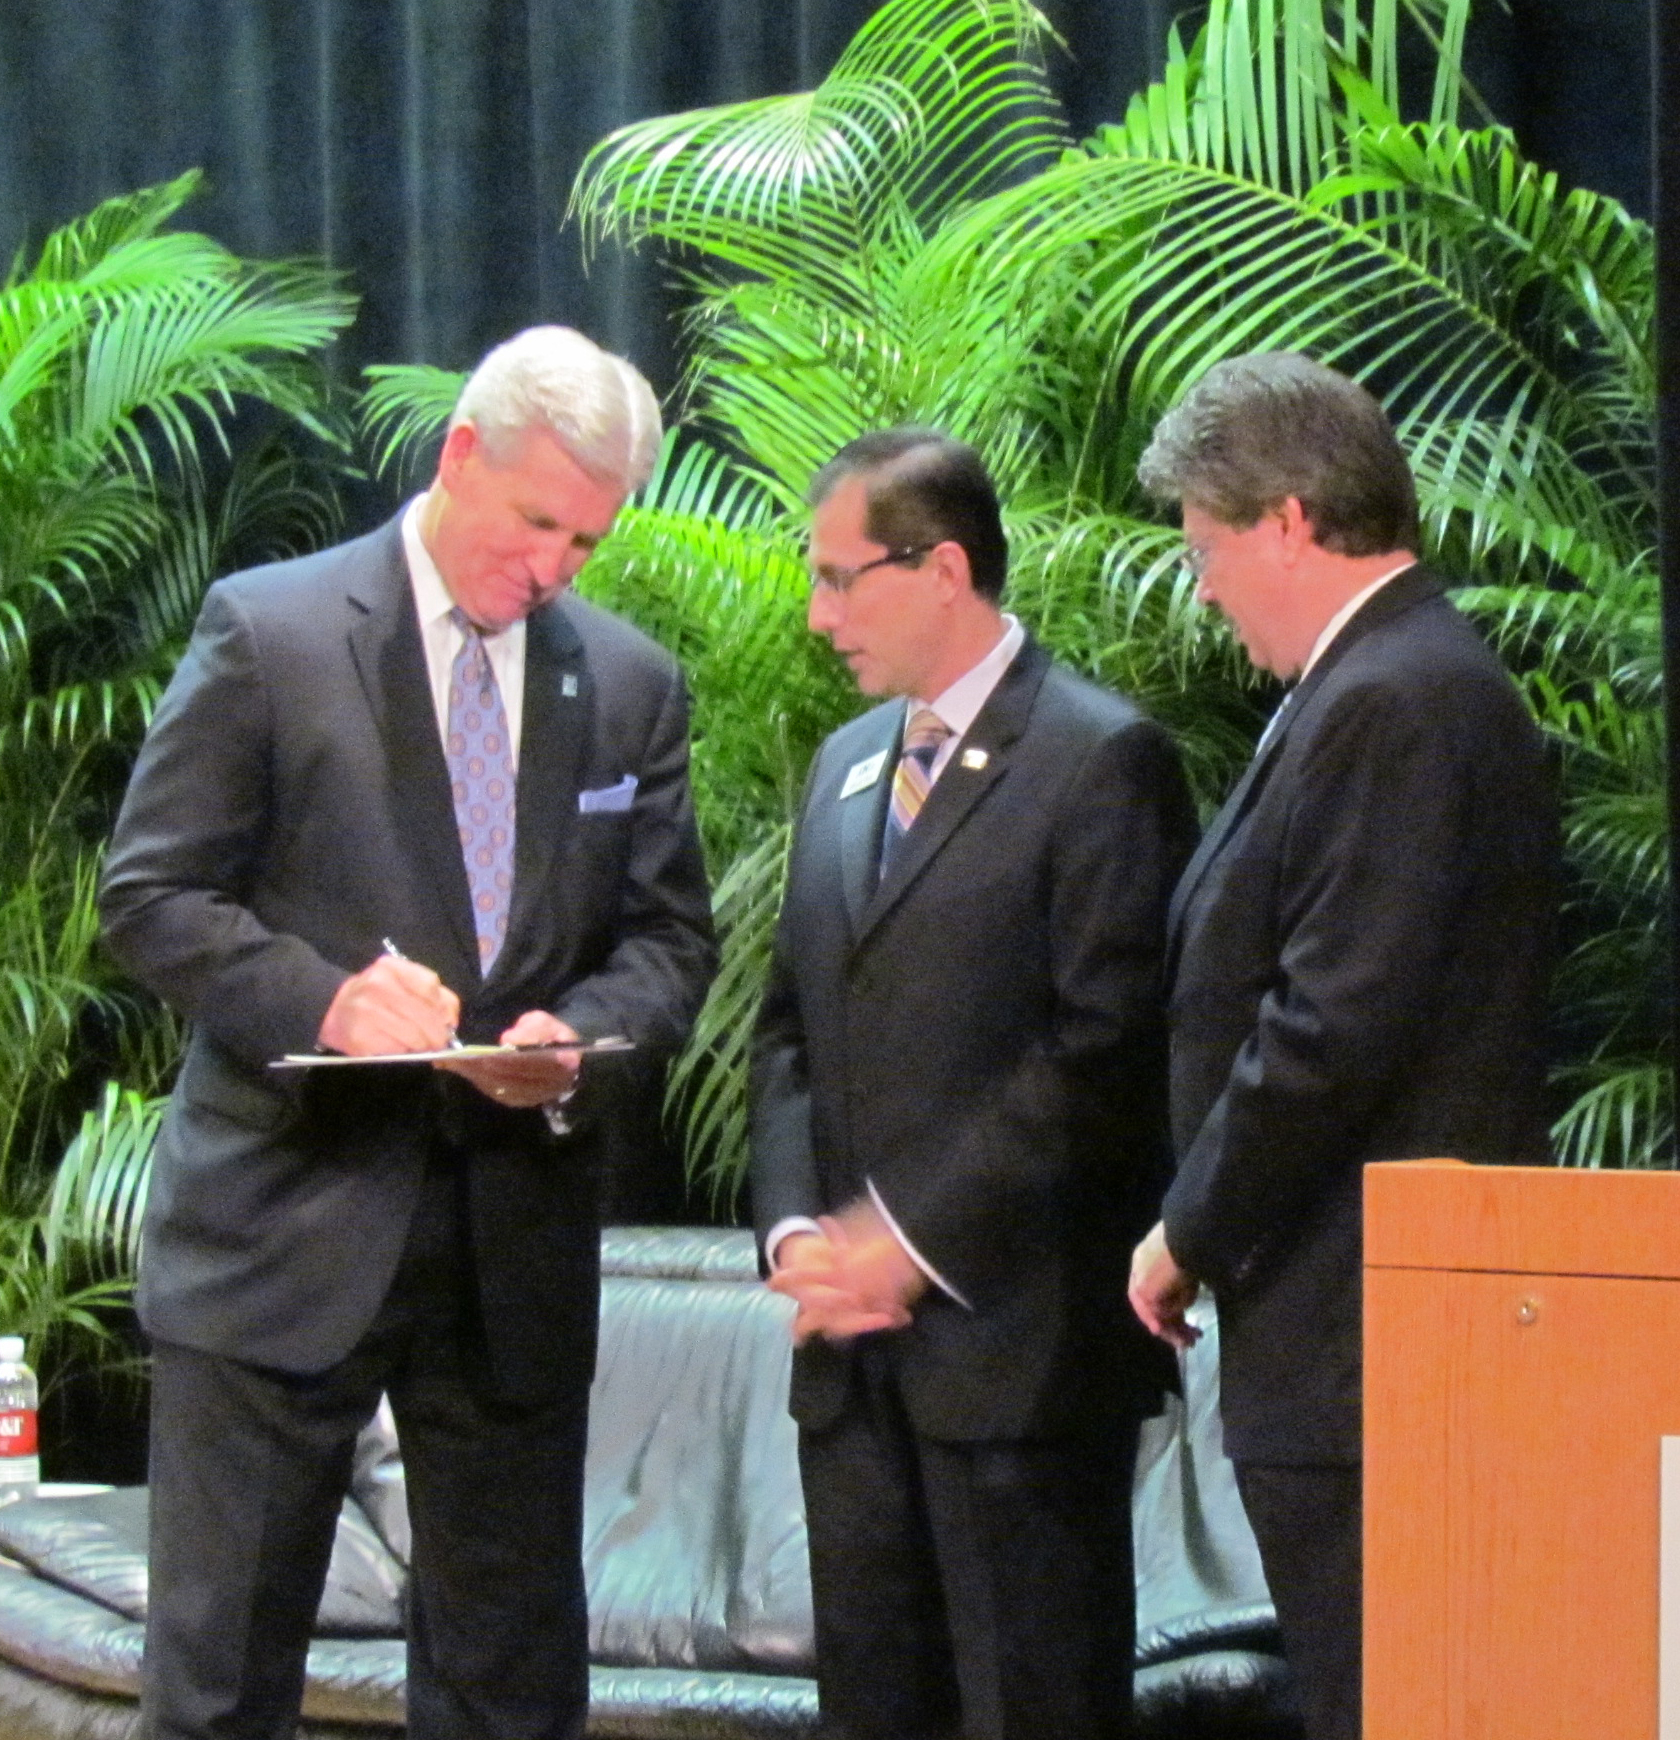 Northwood President Keith A. Pretty, JD signs the partnership agreement as Alfredo Ortiz and Dr. Tom Duncan look on.